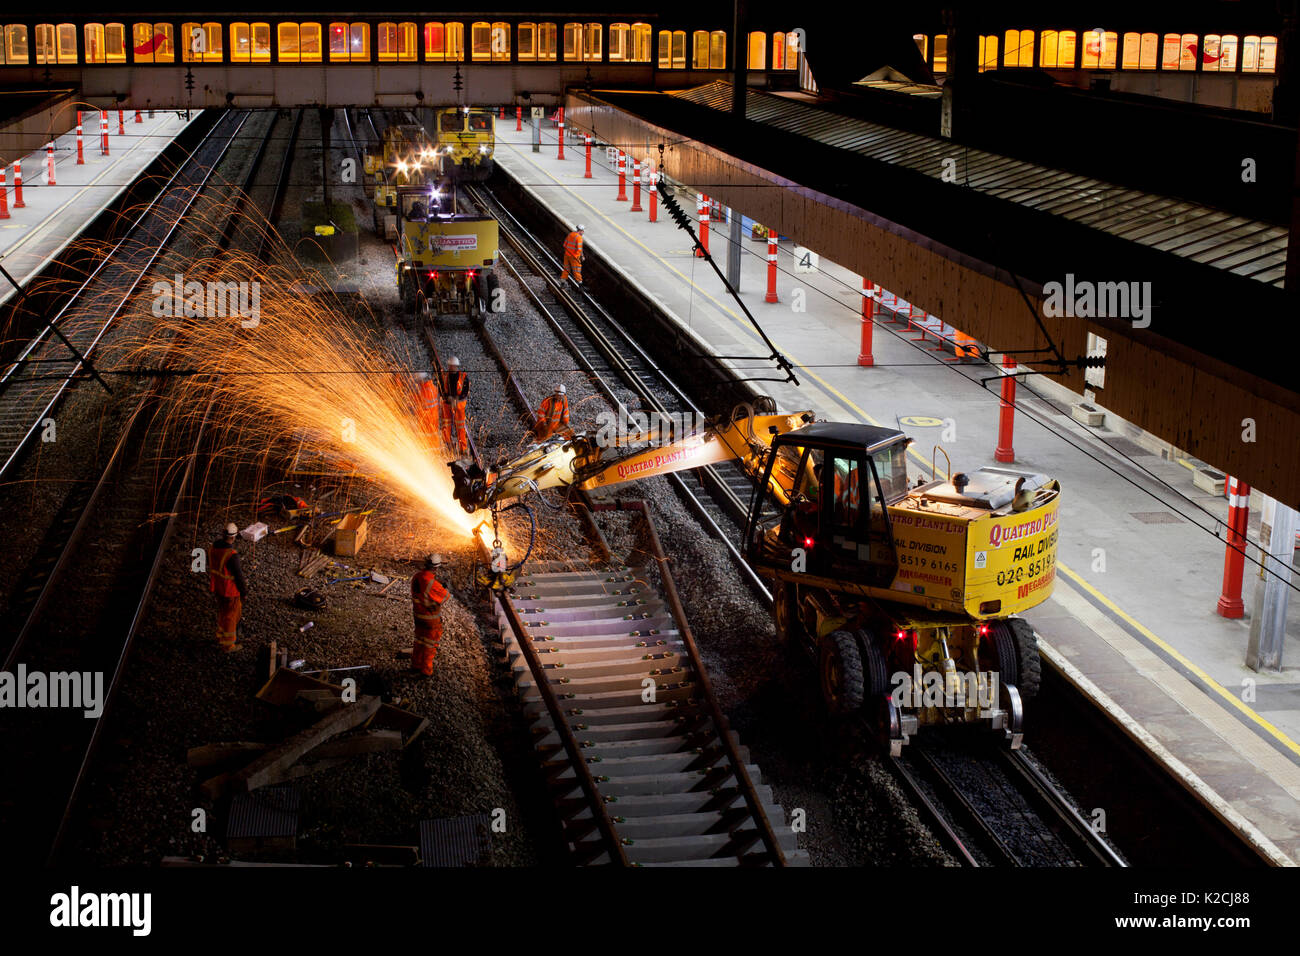 Network rail Railway engineering work, track renewal underway at Lancaster on the west coast main line early on a Sunday morning - Stock Image